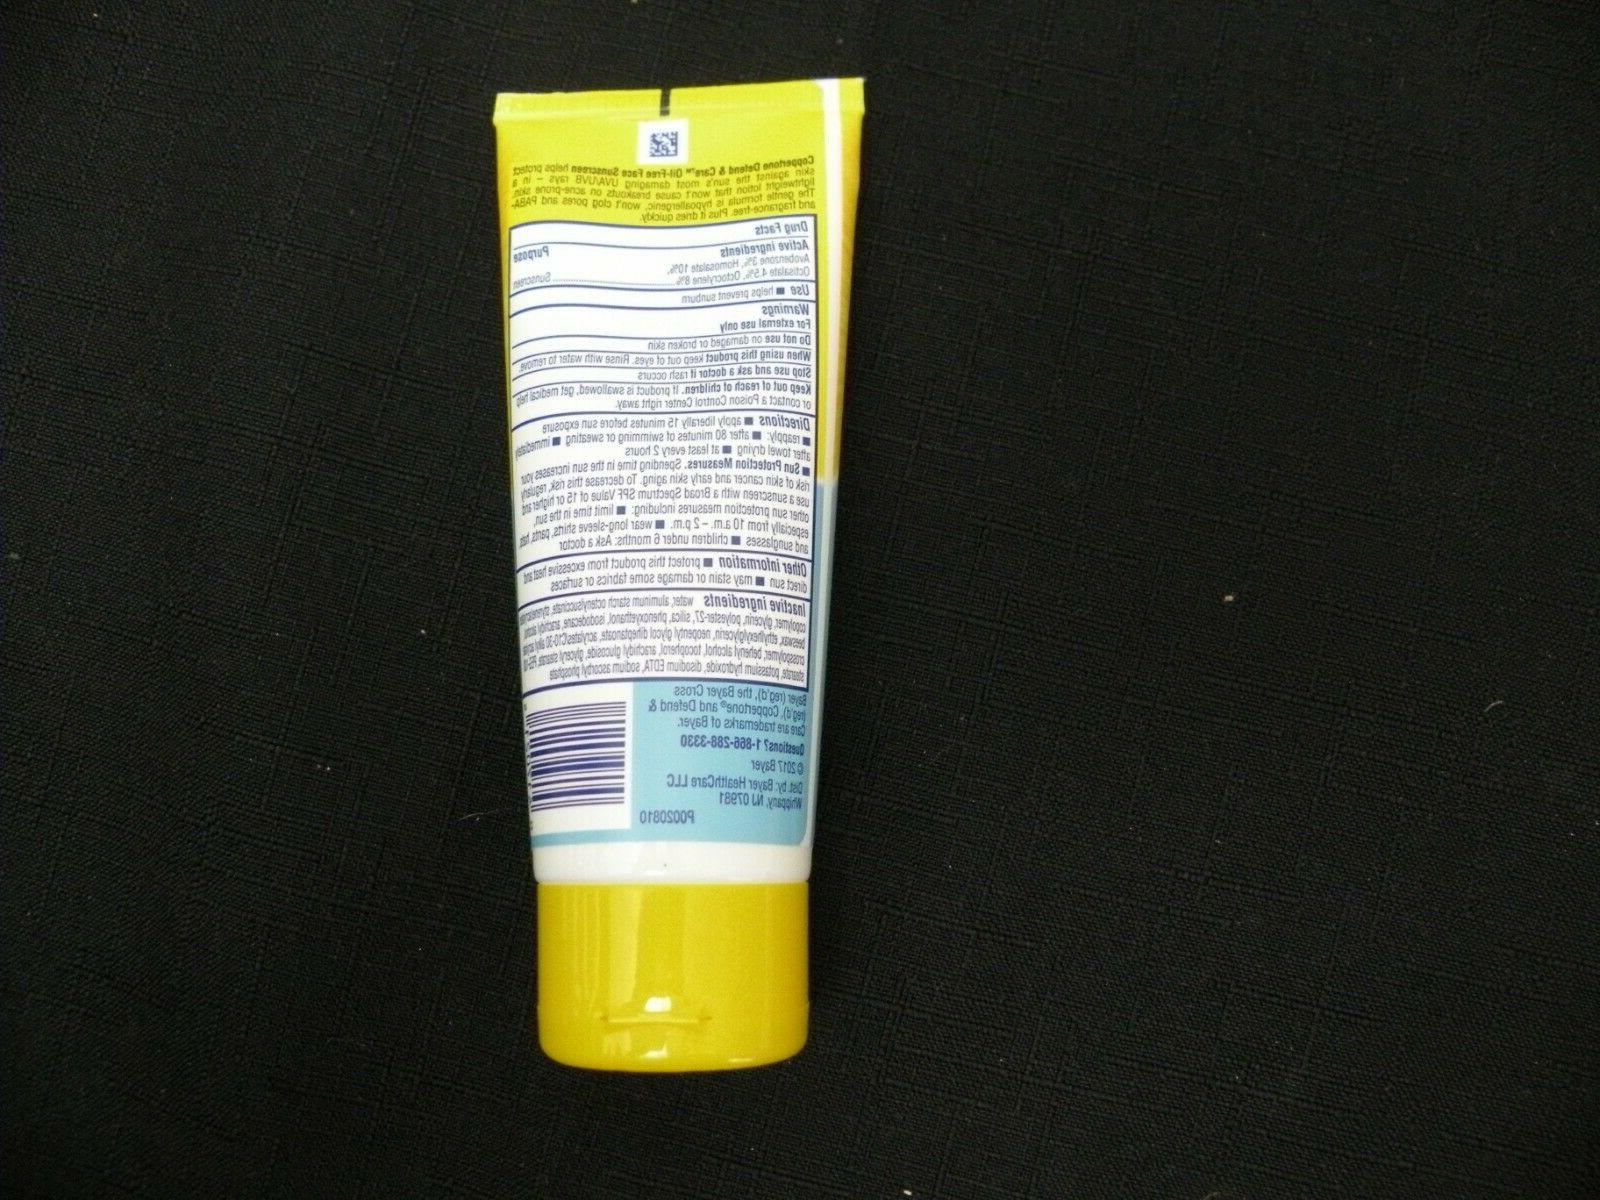 NEW care Face Sunscreen Oil Free 50 3 oz